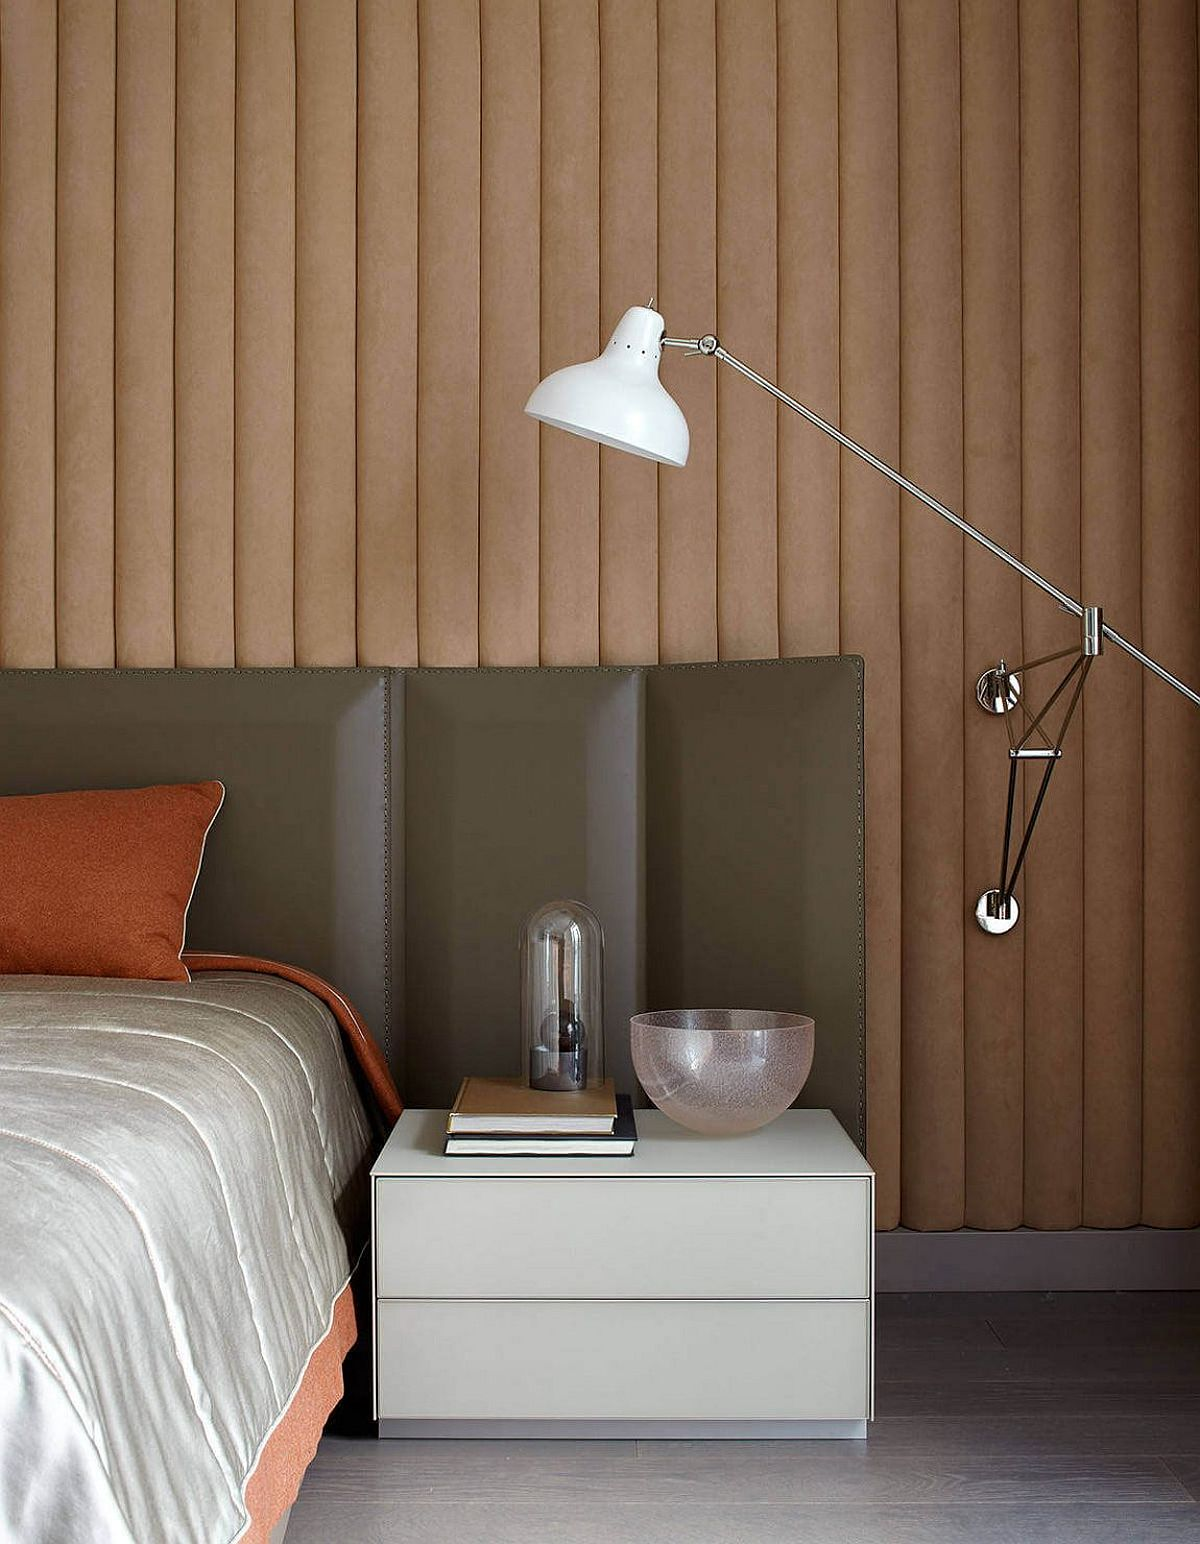 Bedside wall-mounted lighting and nighstand save up space